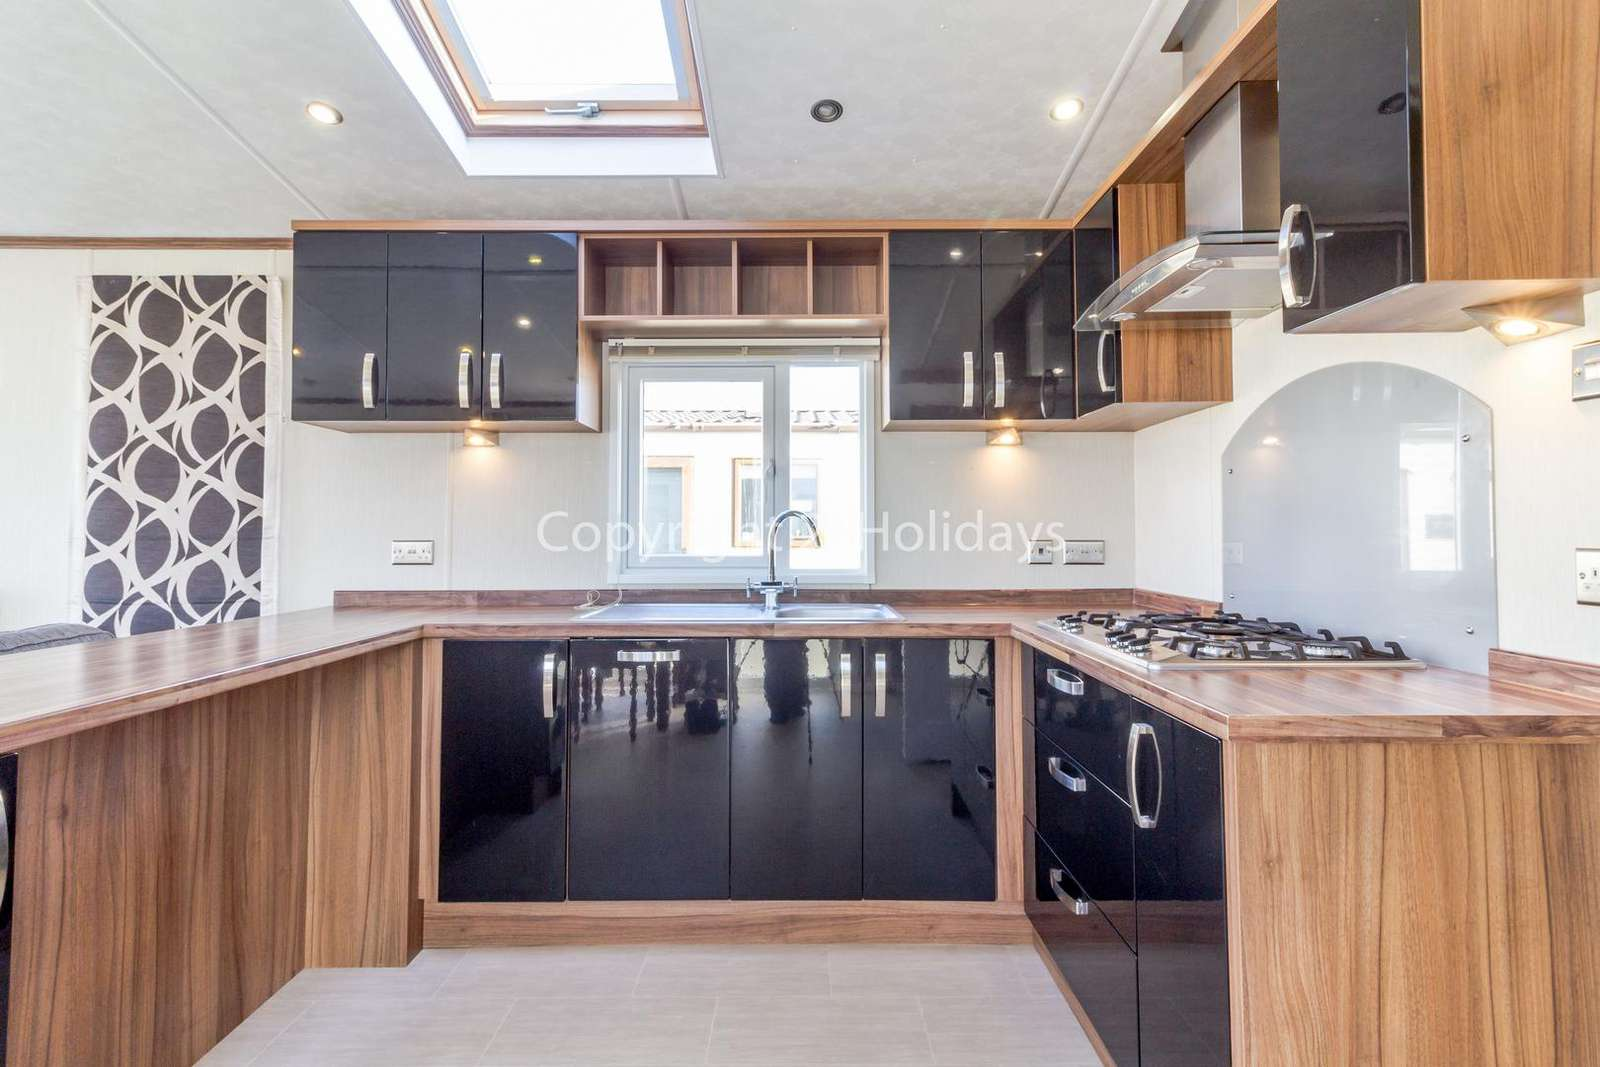 Modern kitchen fully equipped, perfect for self catering holidays!